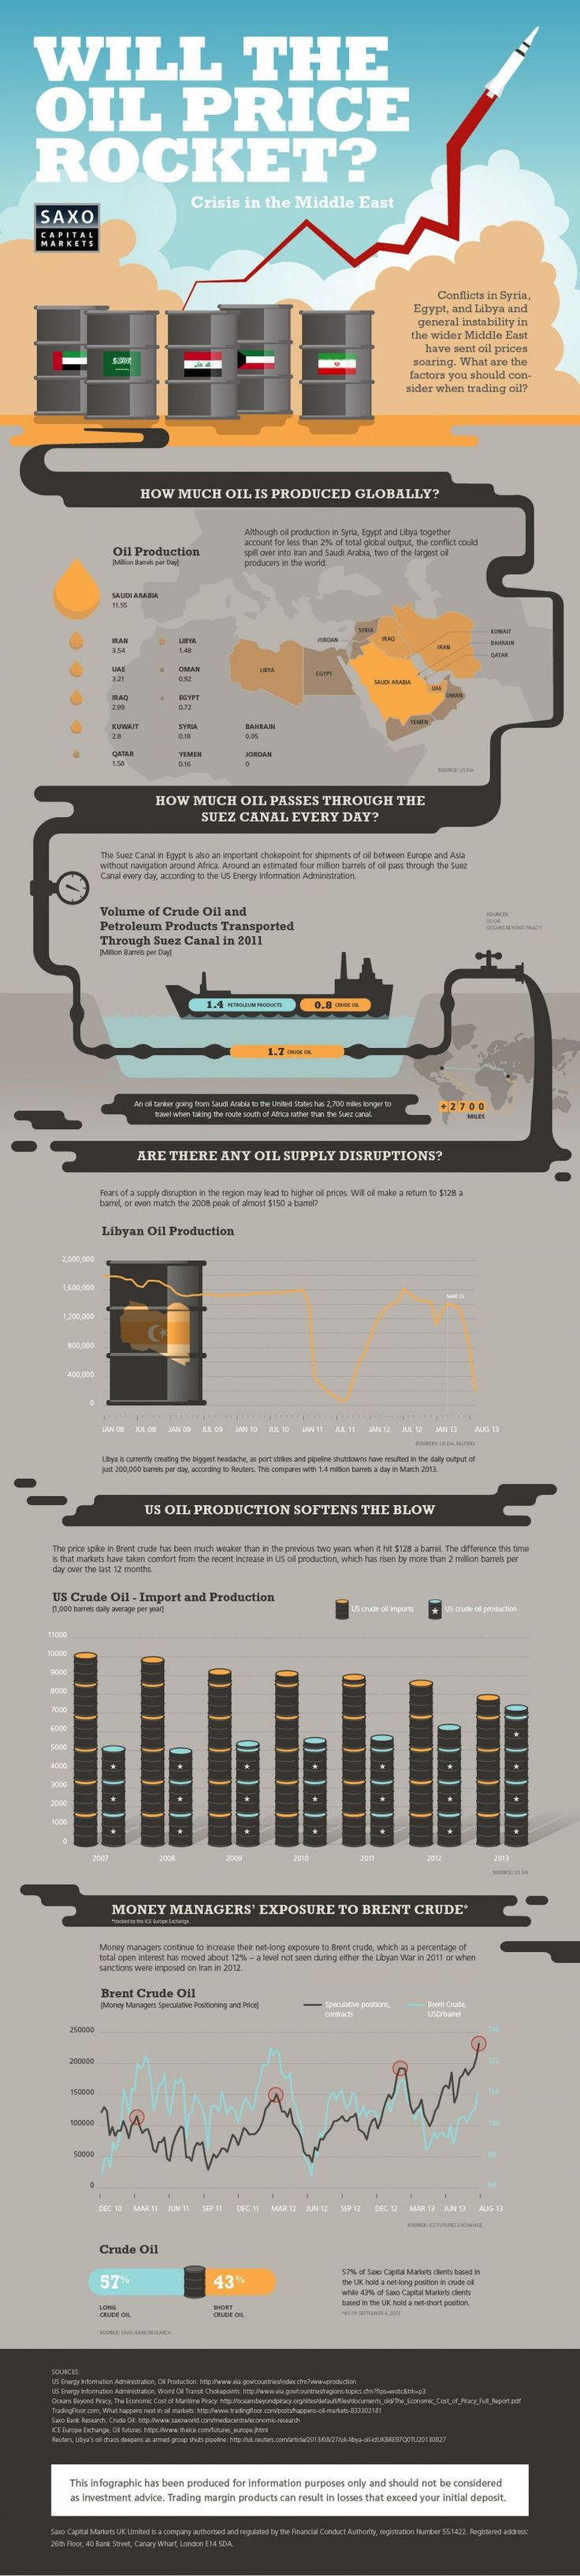 Crisis in the Middle East and Oil Prices - Visual Capitalist